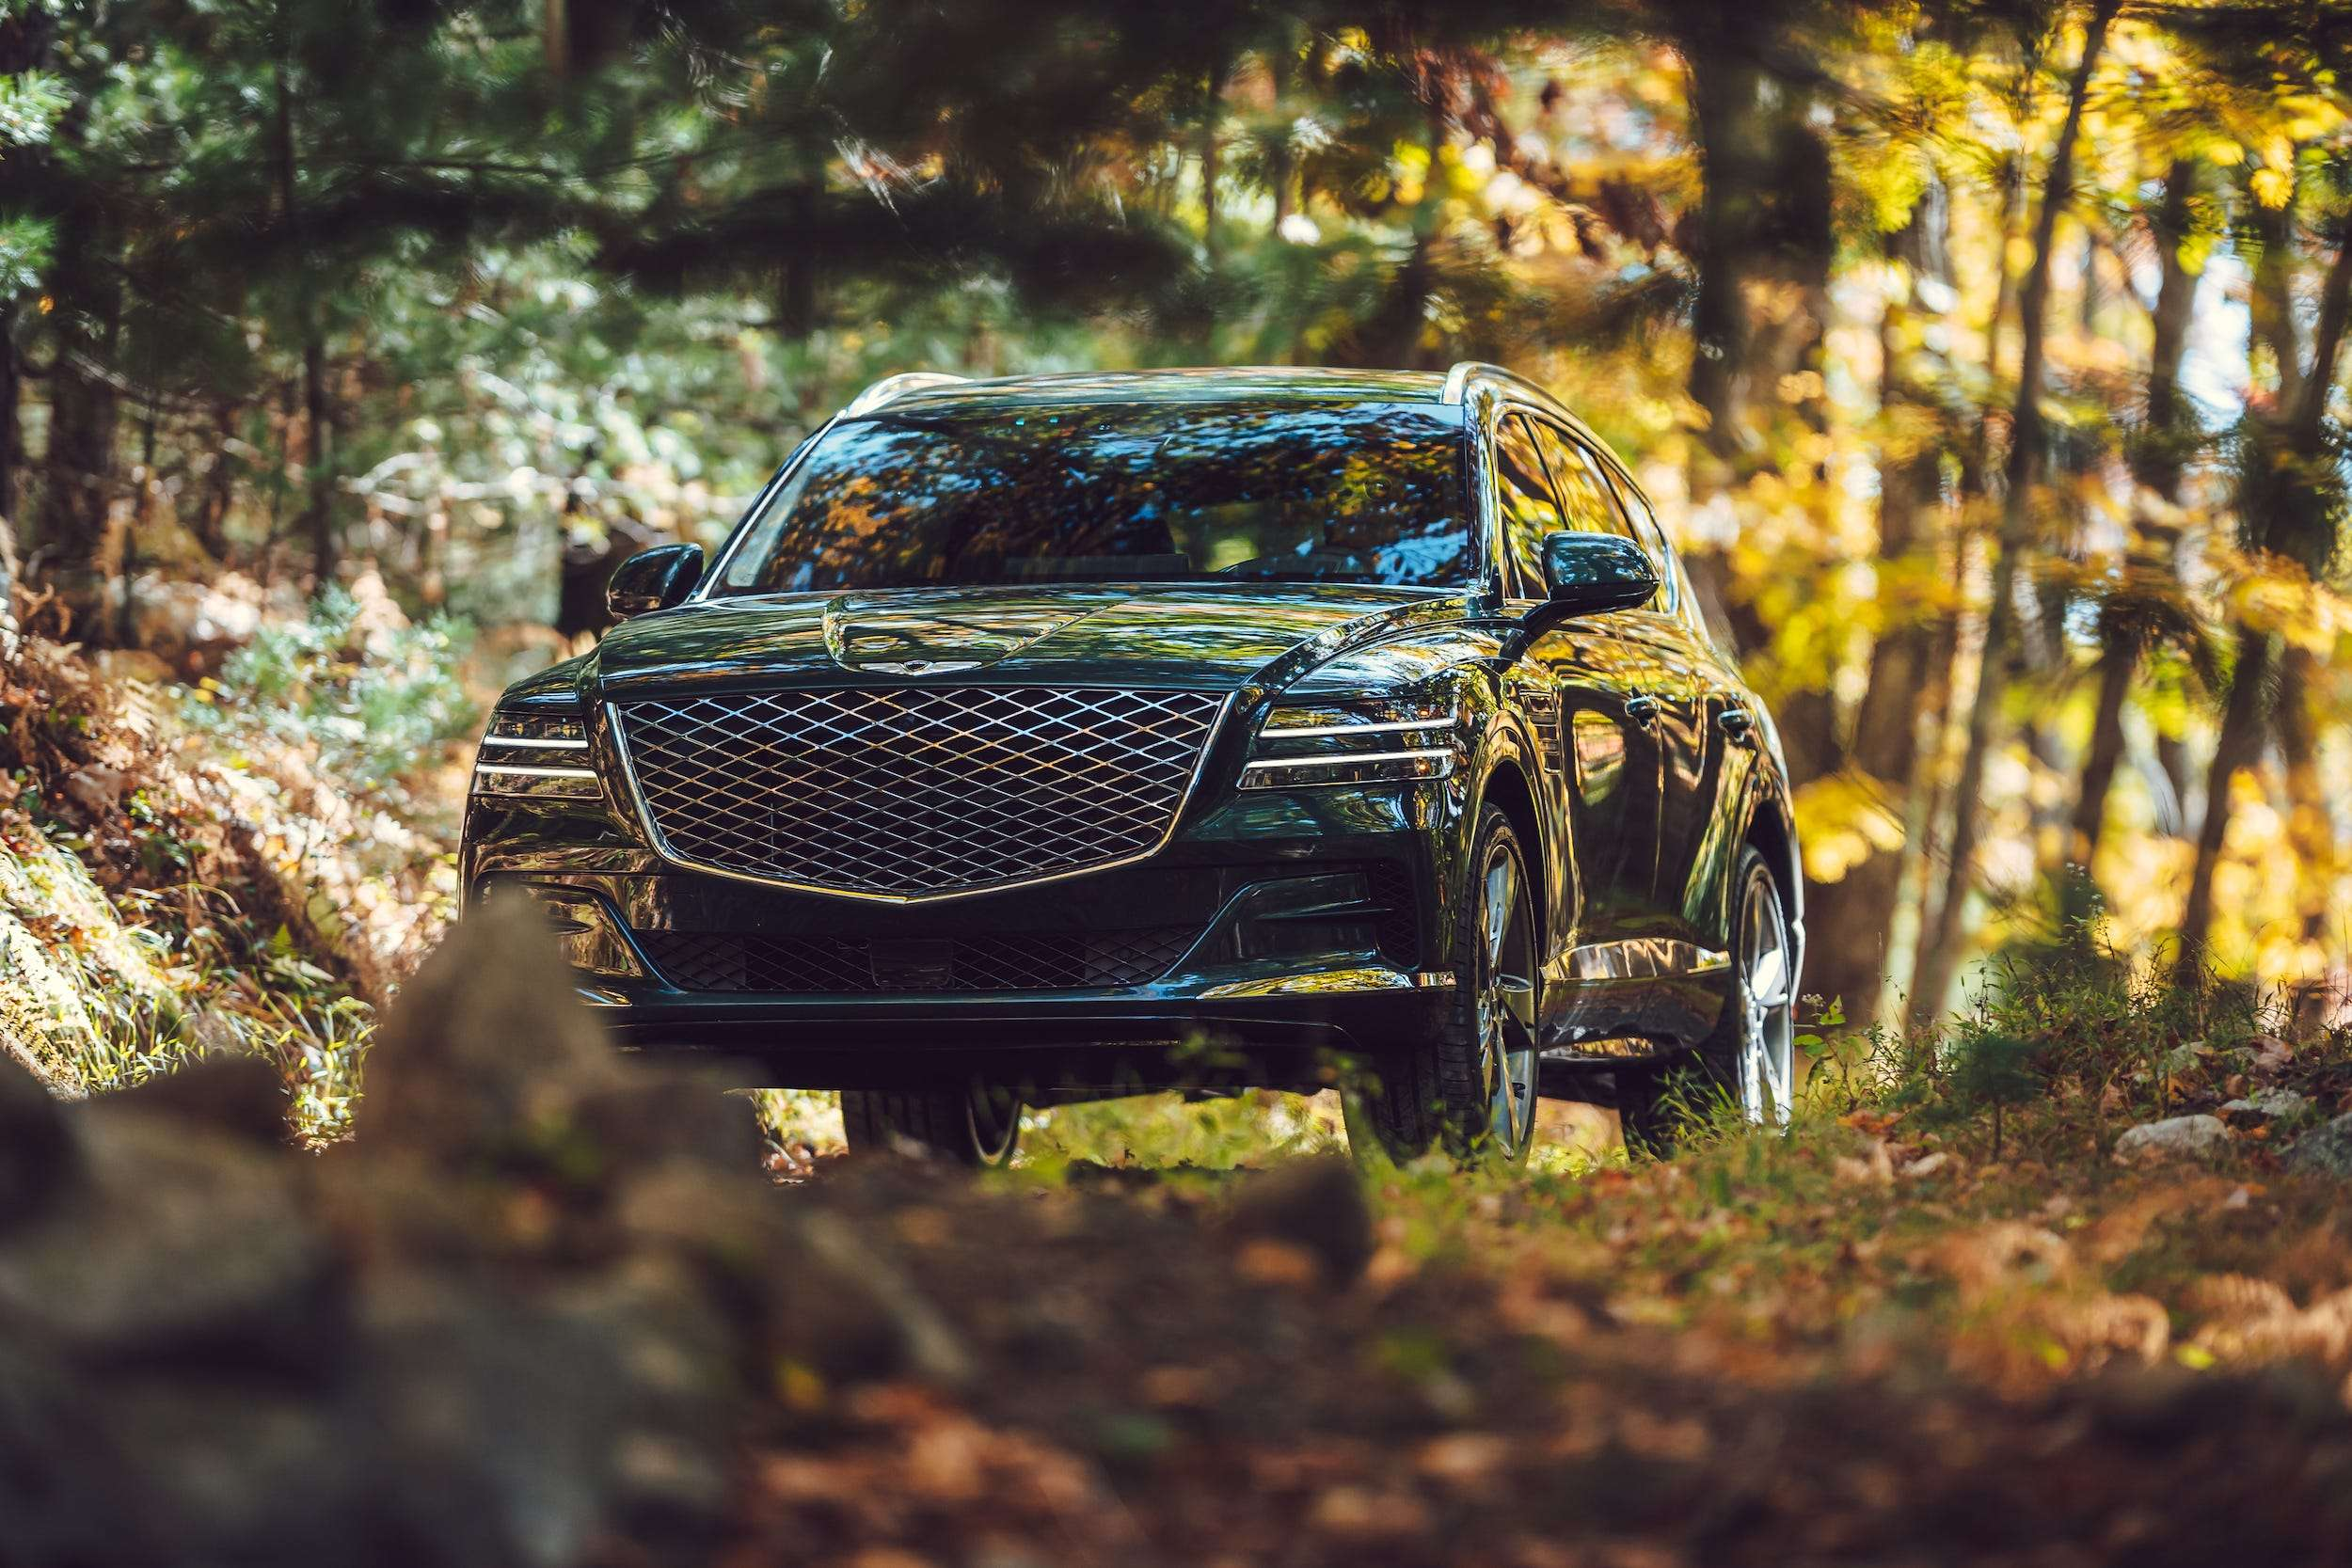 Genesis Gv80 Luxury Midsize Suv Most Useful Feature Business Insider